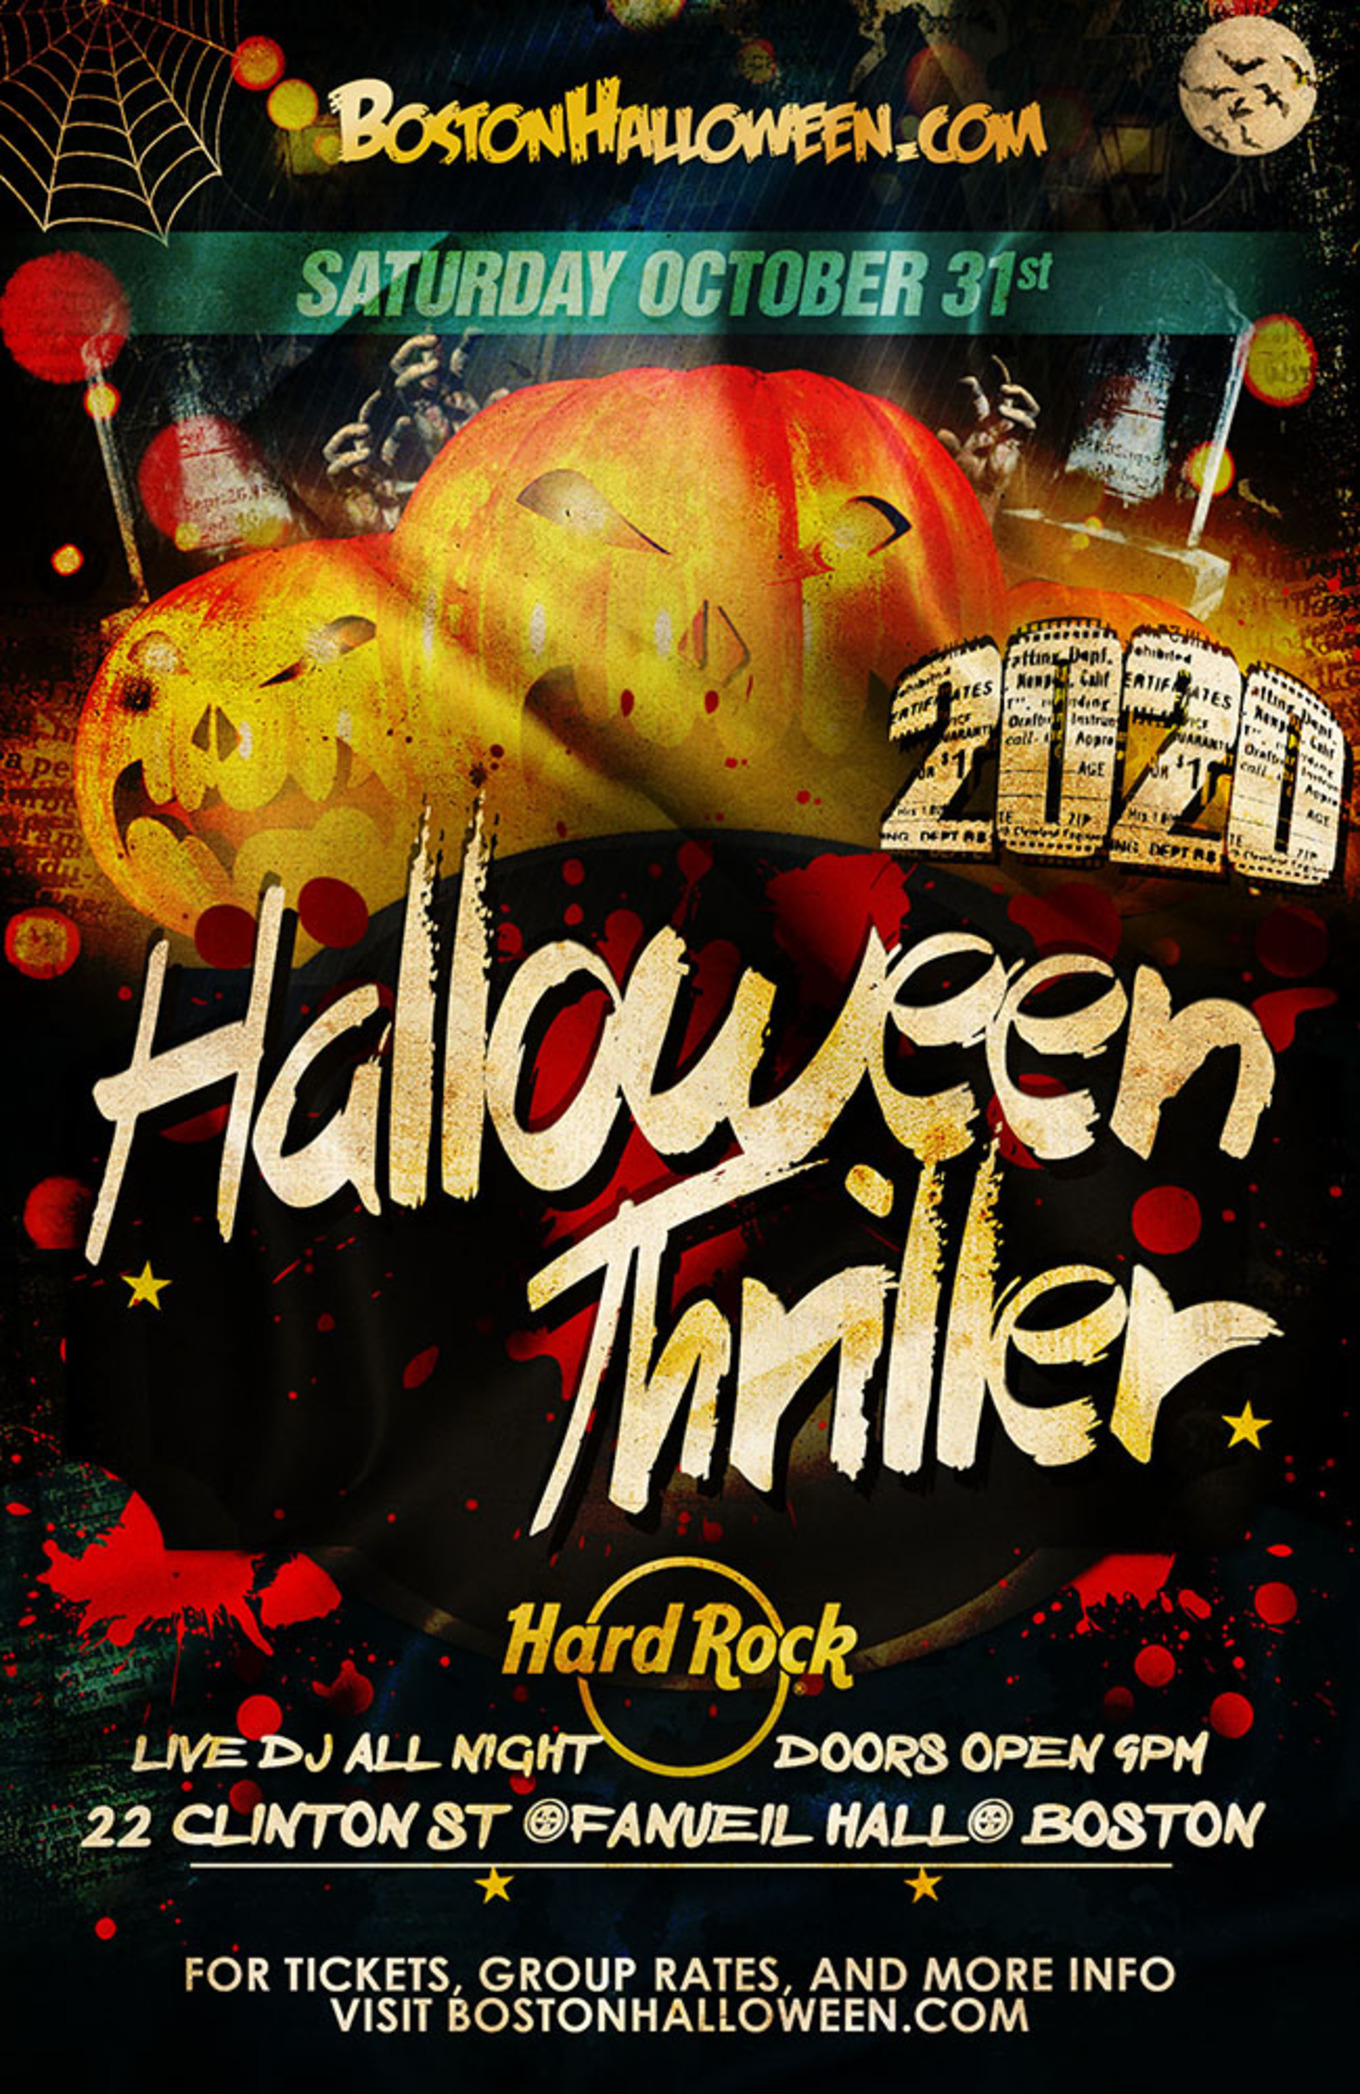 October 31 2020 Halloween Events Haverhill, Ma Hard Rock Cafe Boston Halloween Thriller   Tickets   October 31, 2020